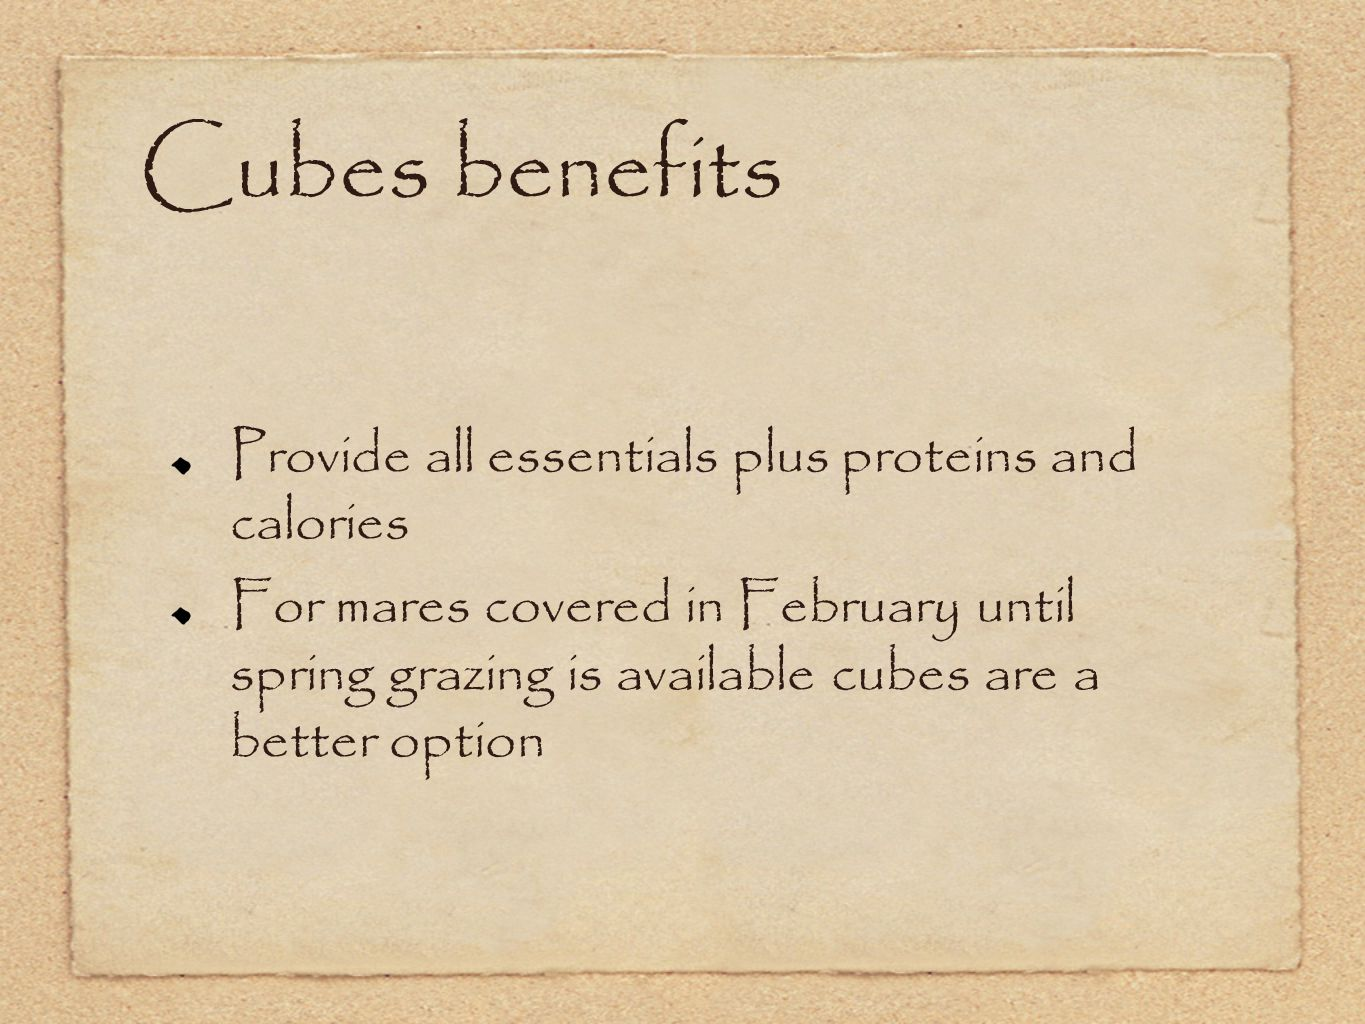 Cubes benefits Provide all essentials plus proteins and calories For mares covered in February until spring grazing is available cubes are a better op